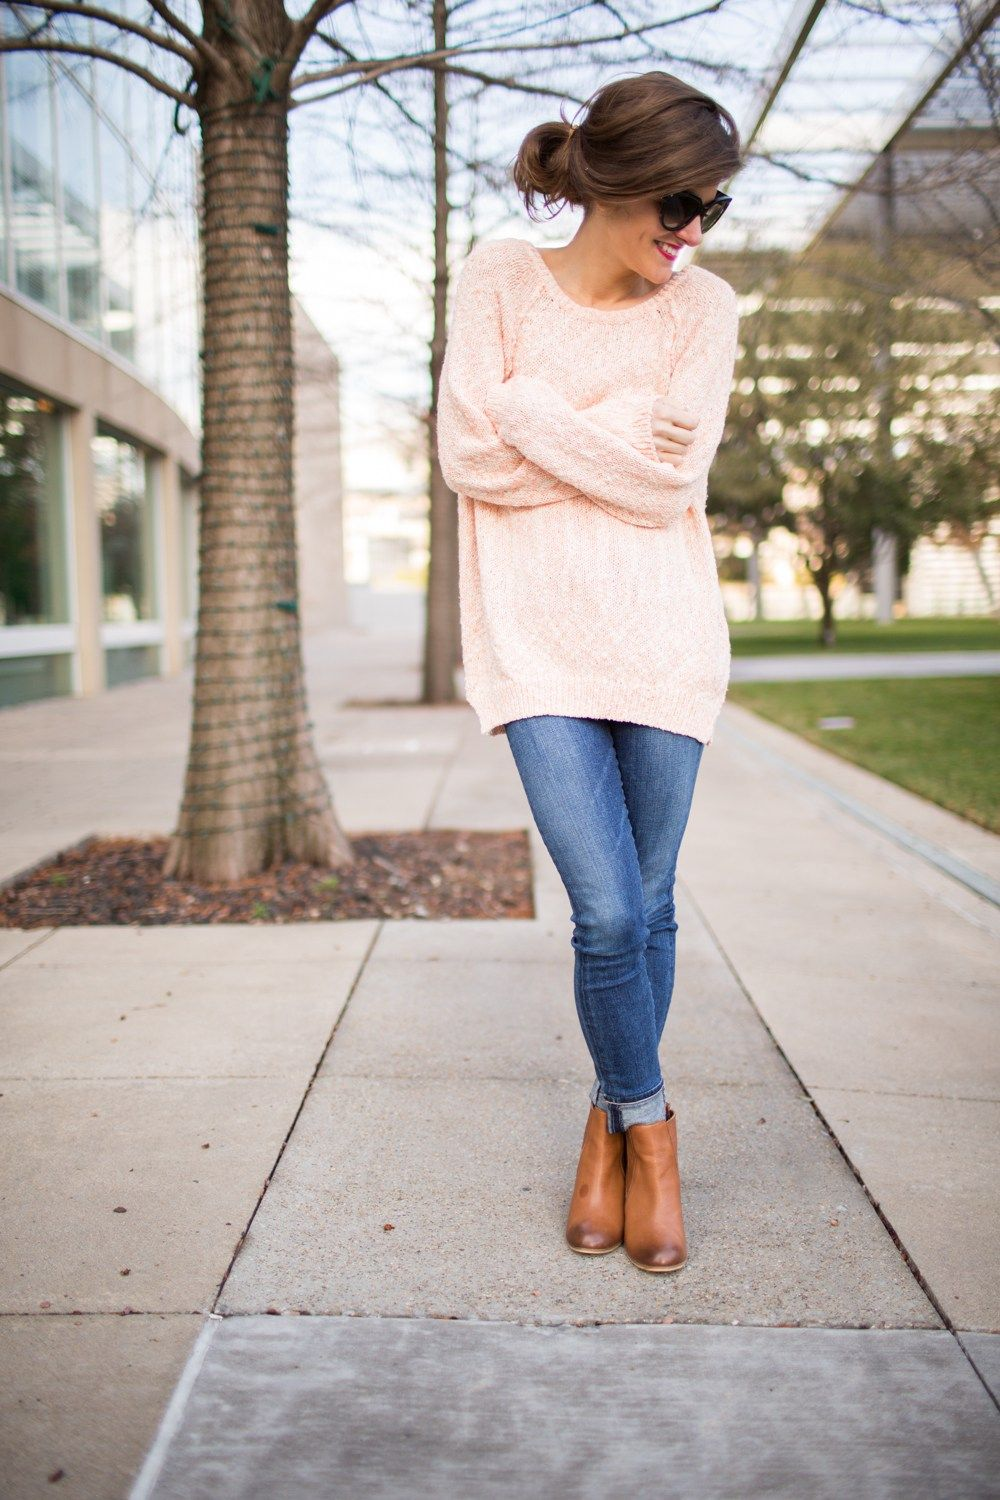 Jeans and Ankle Booties with an Oversized Sweater